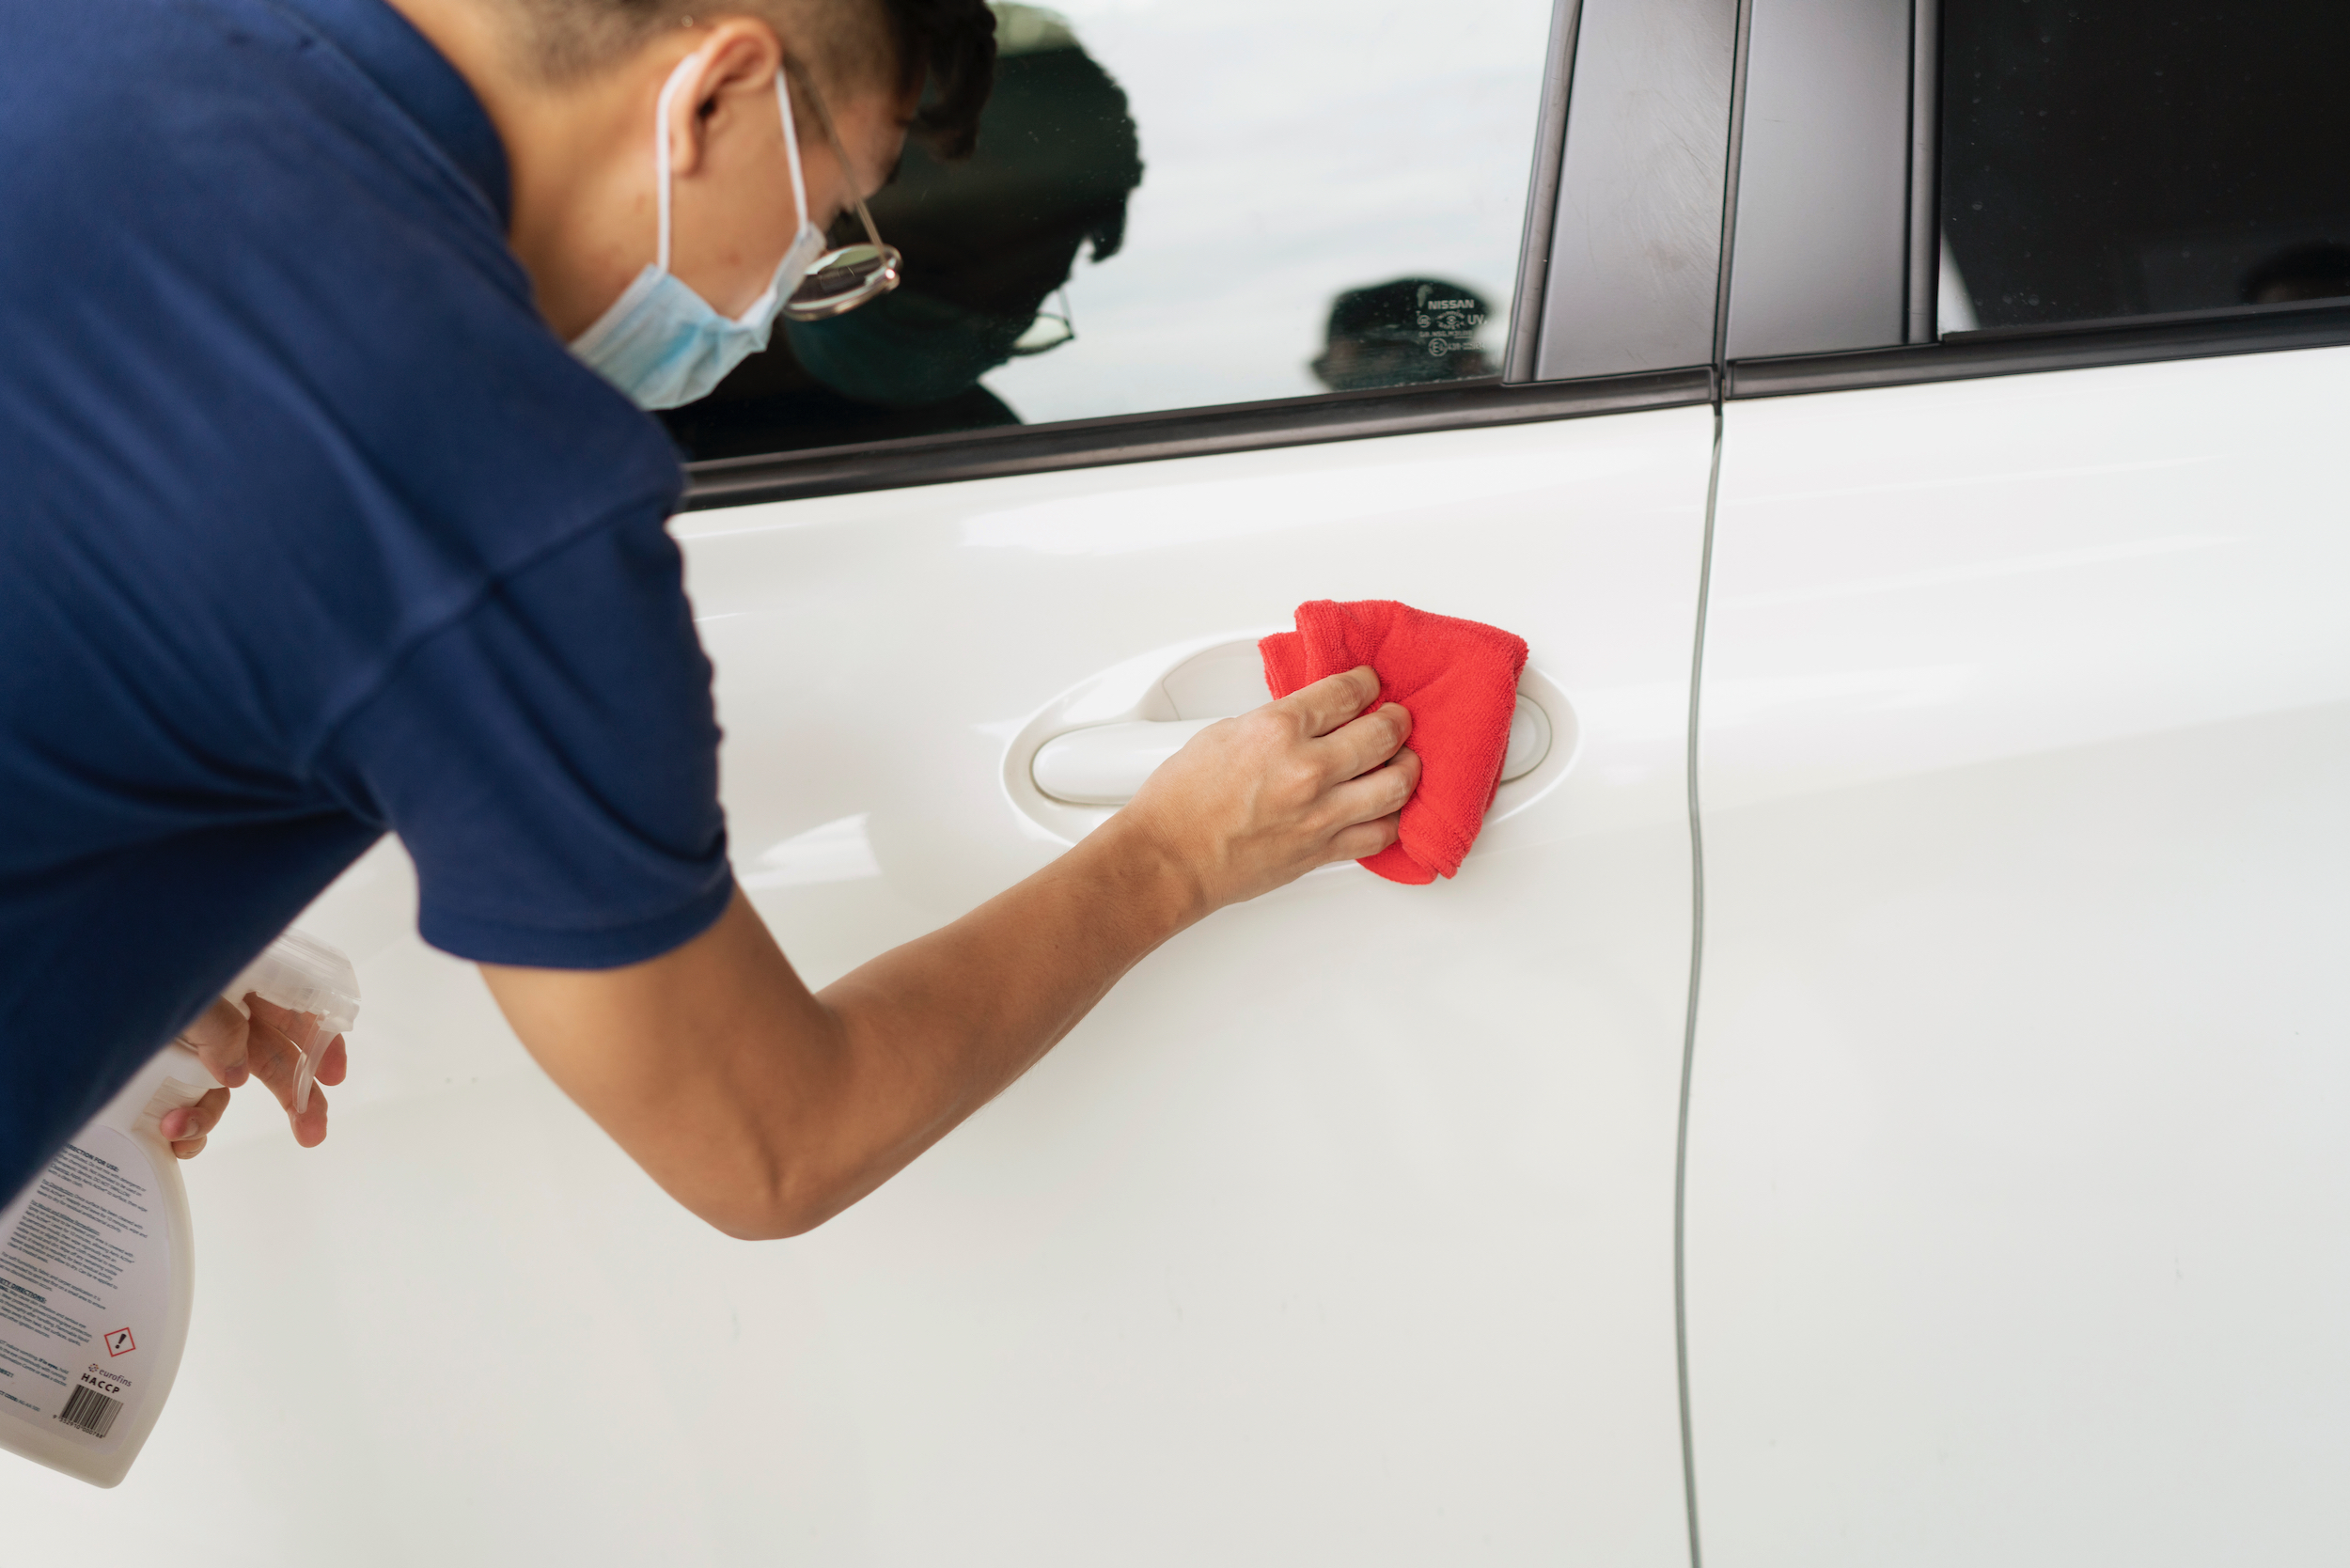 CAR-RANTINE: Keep your car clean with ProActive Sanitisation